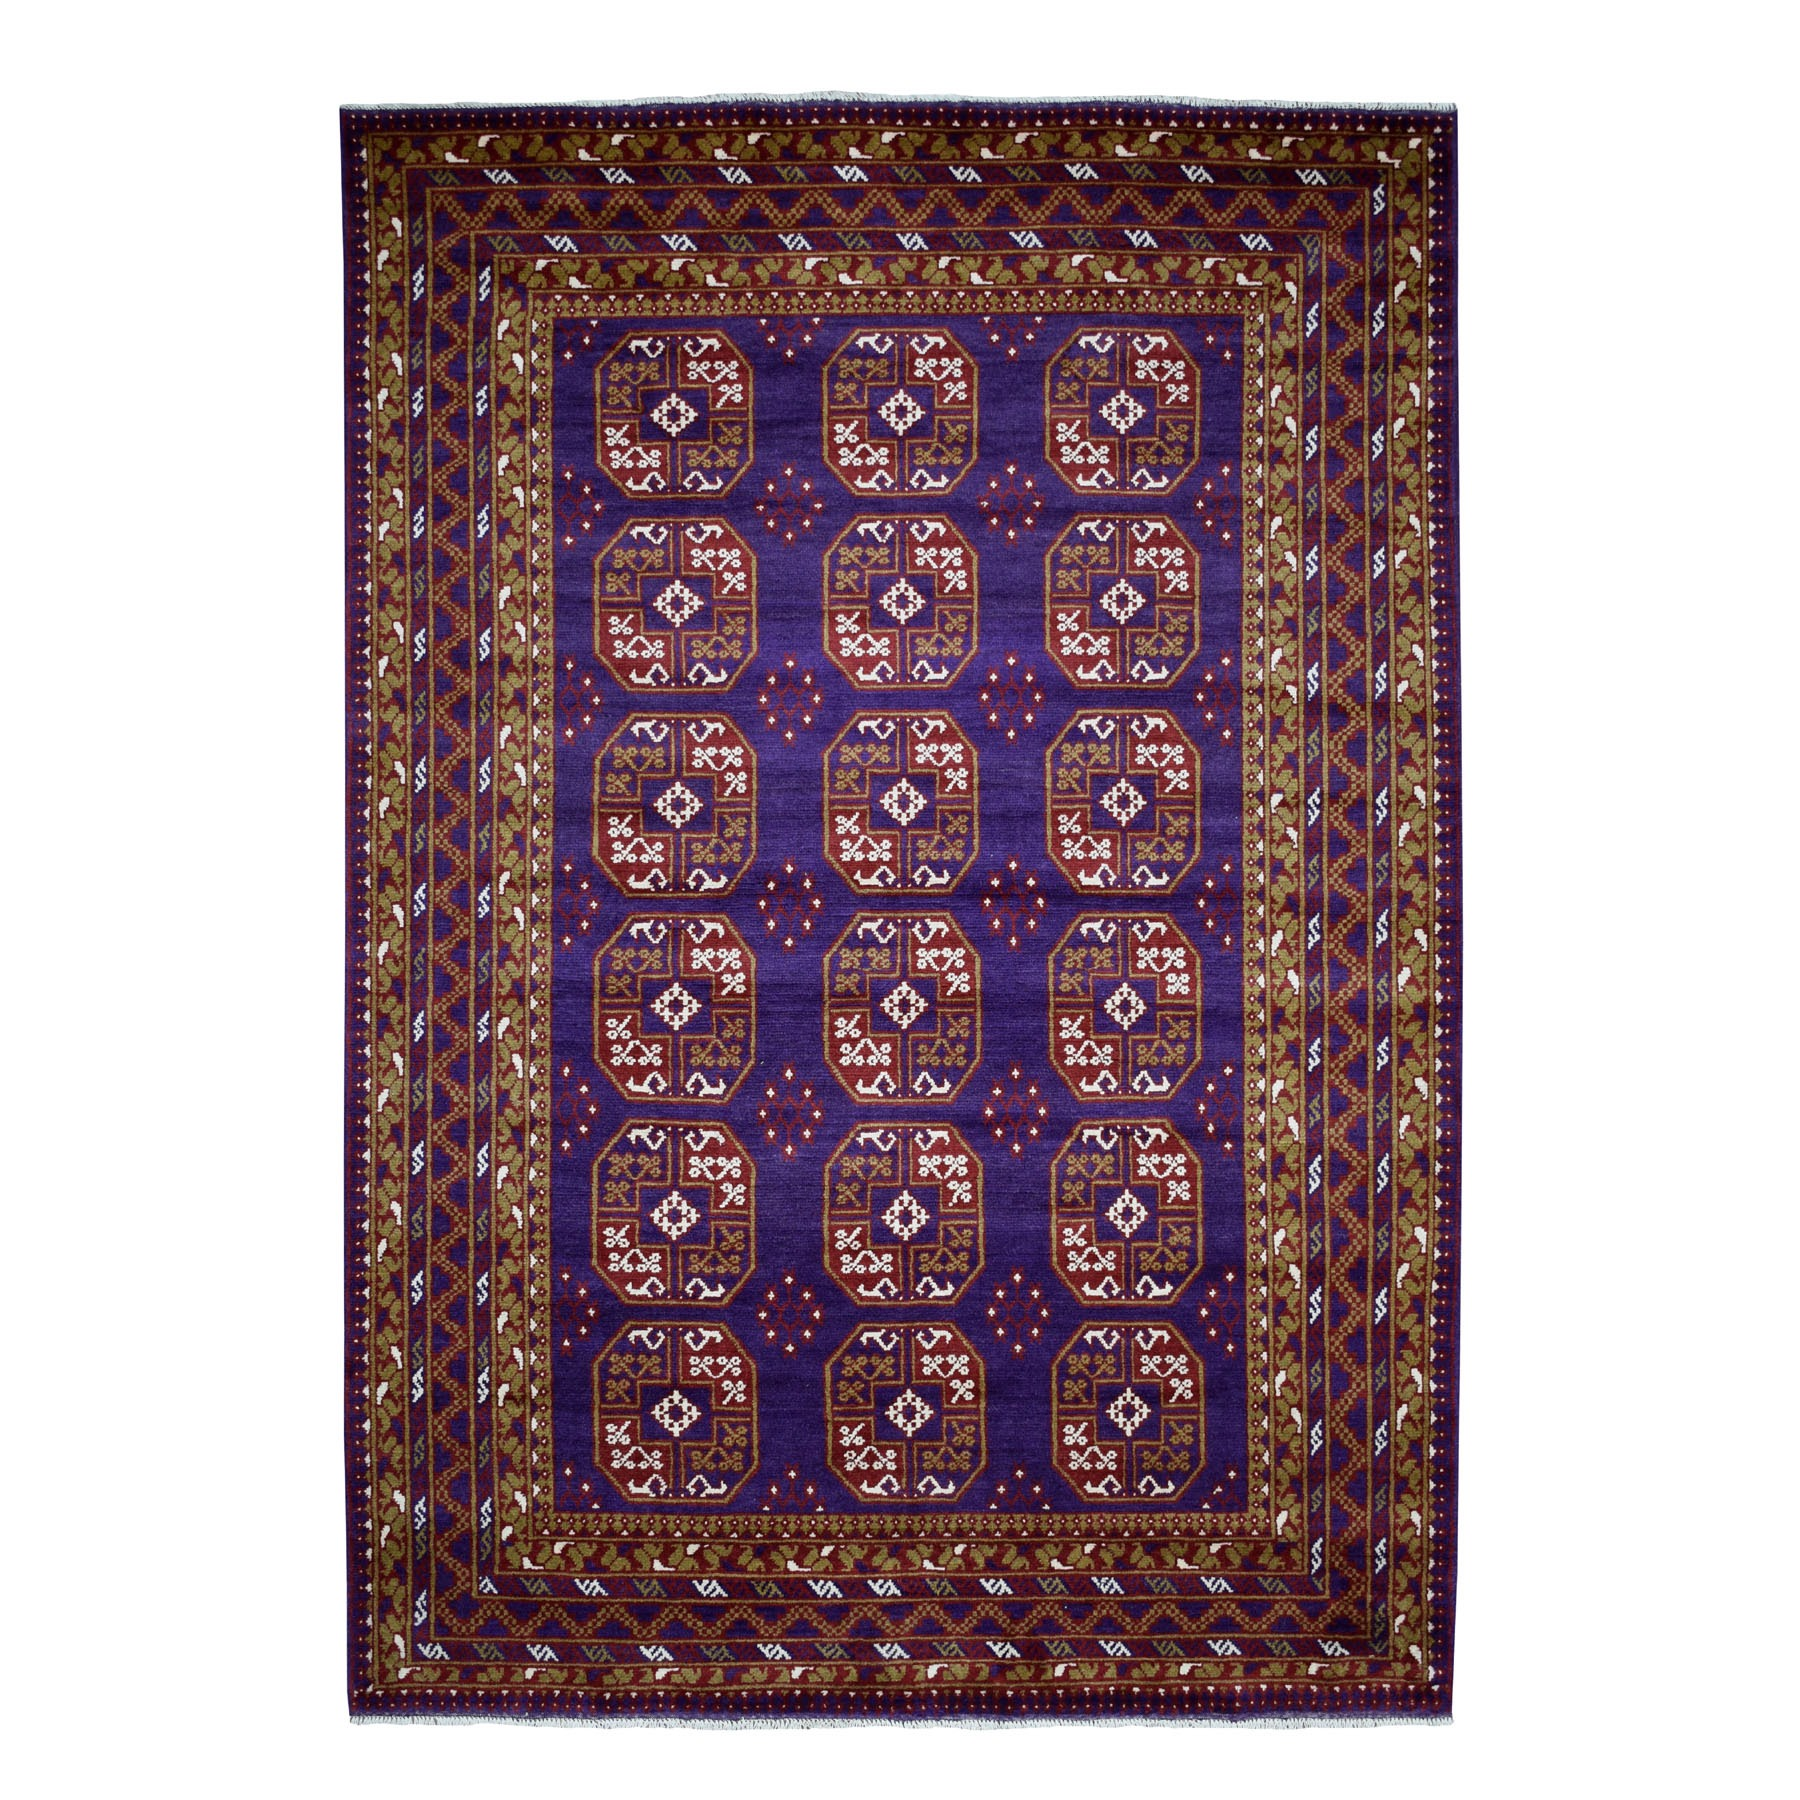 "6'8""x9'5"" Purple Elephant Feet Design Colorful Afghan Baluch Hand Knotted Pure Wool Oriental Rug"